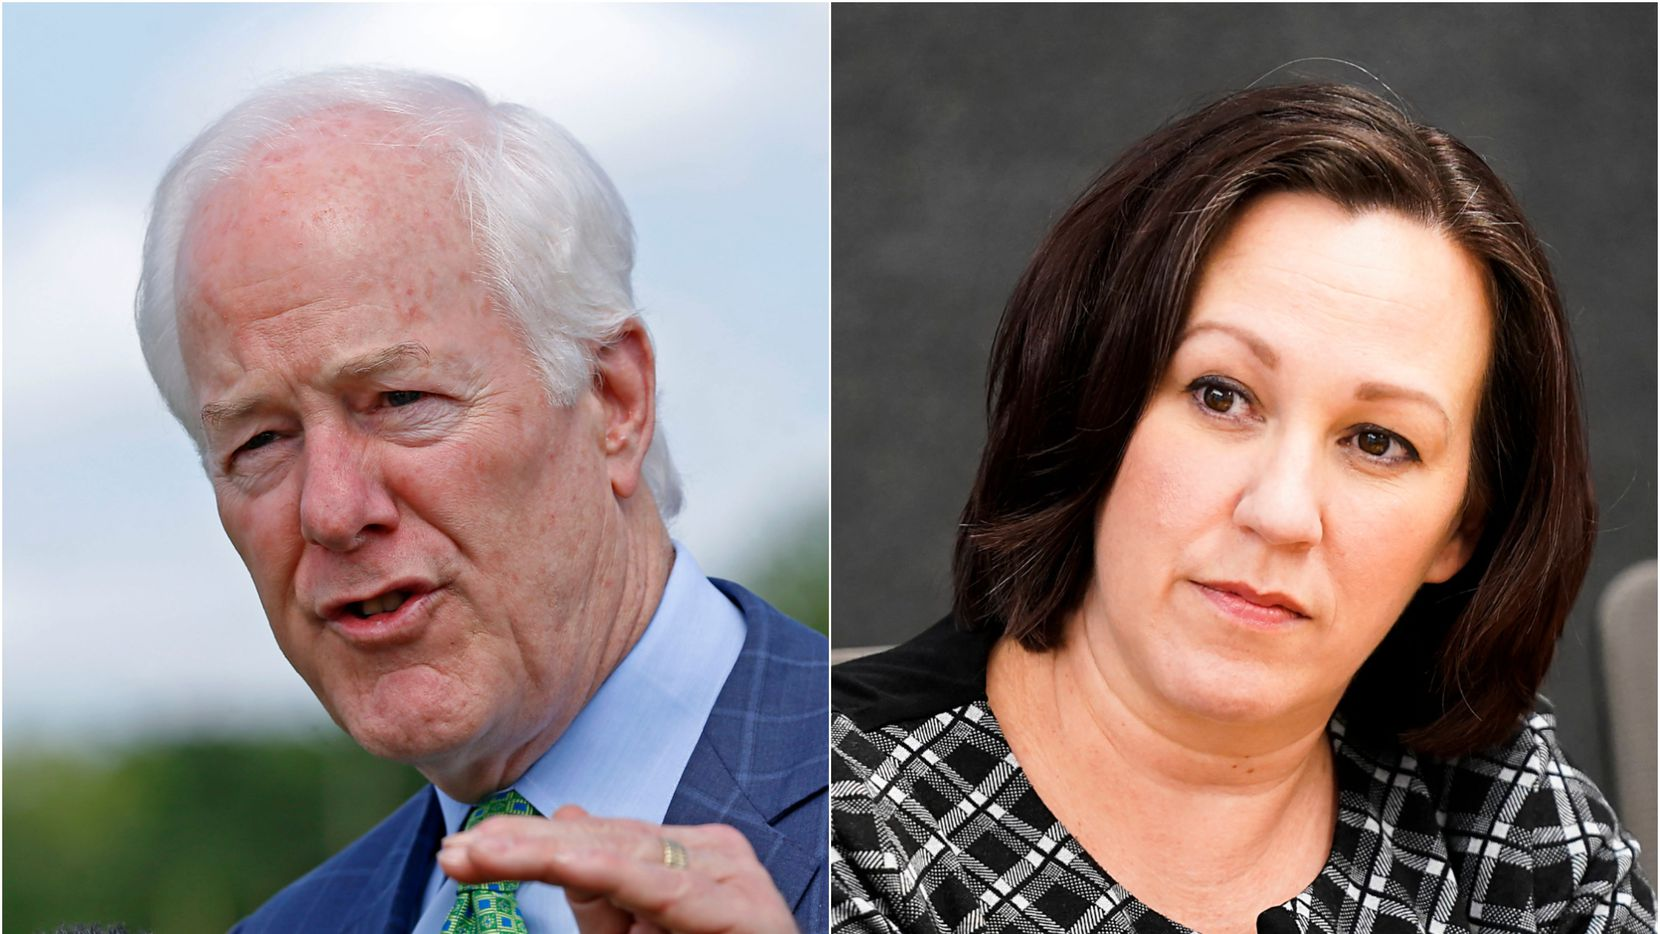 Sen. John Cornyn, left, outside the federal prison in  Seagoville, Texas, on May 11, 2018. At right, M.J. Hegar meeting with The Dallas Morning News editorial board on Feb. 5, 2020. (Jae S. Lee and Smiley N. Pool/staff)